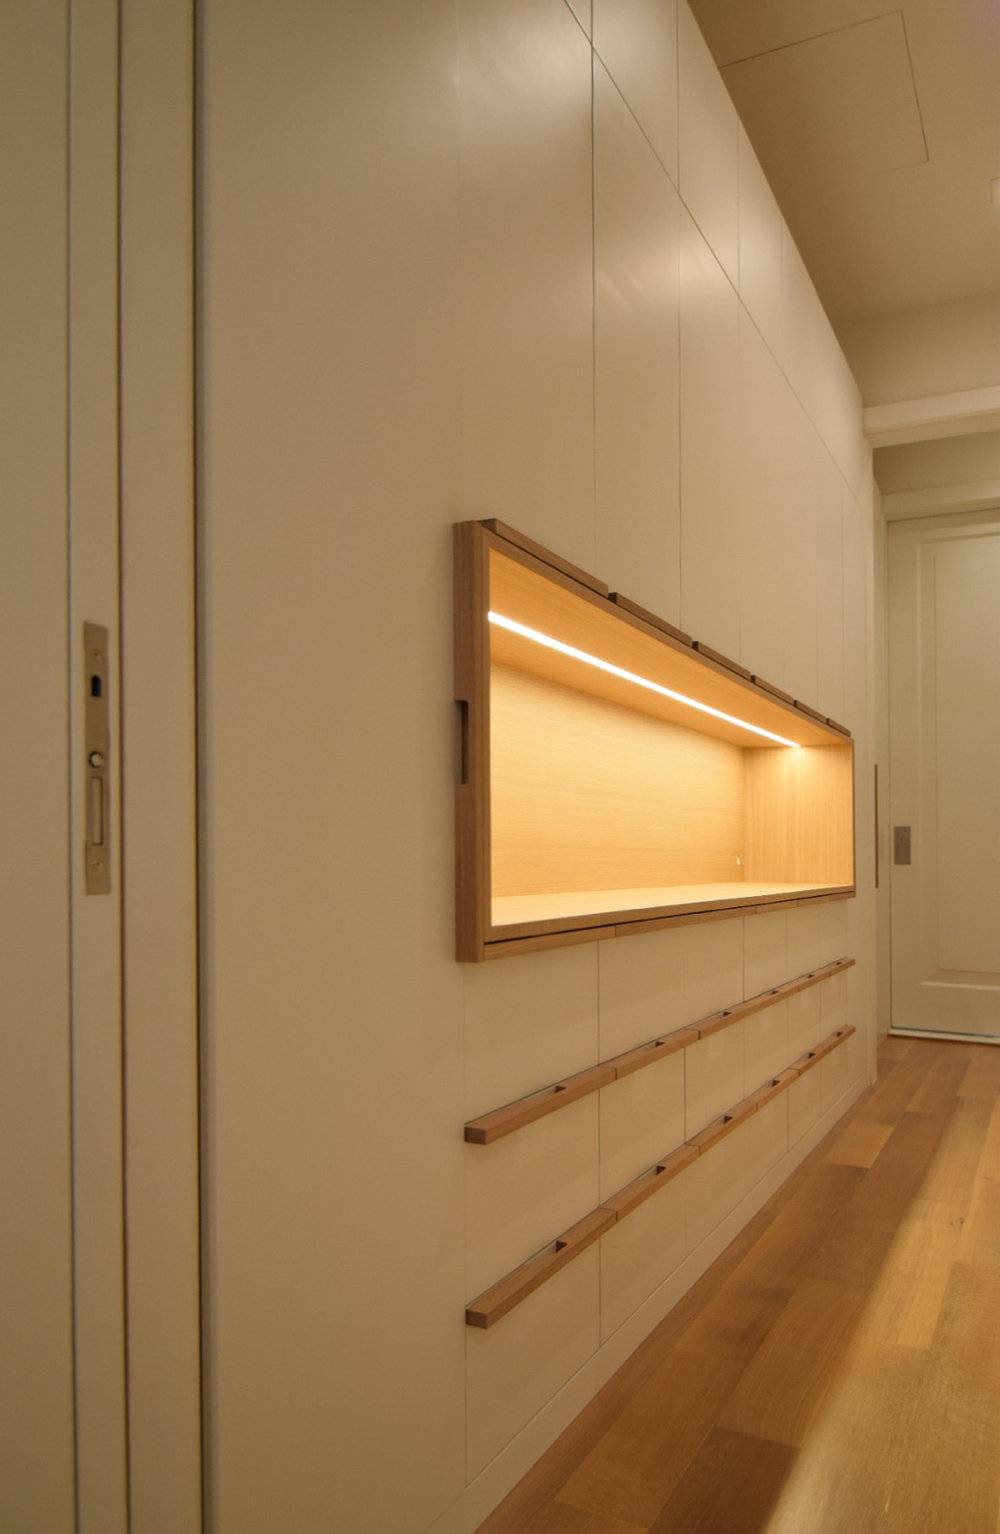 custom-walk-in-closet-drawers-white-lacquer-finish-maple-interior-white-oak-handles-and-white-oak-accent-open-cabinet.jpg